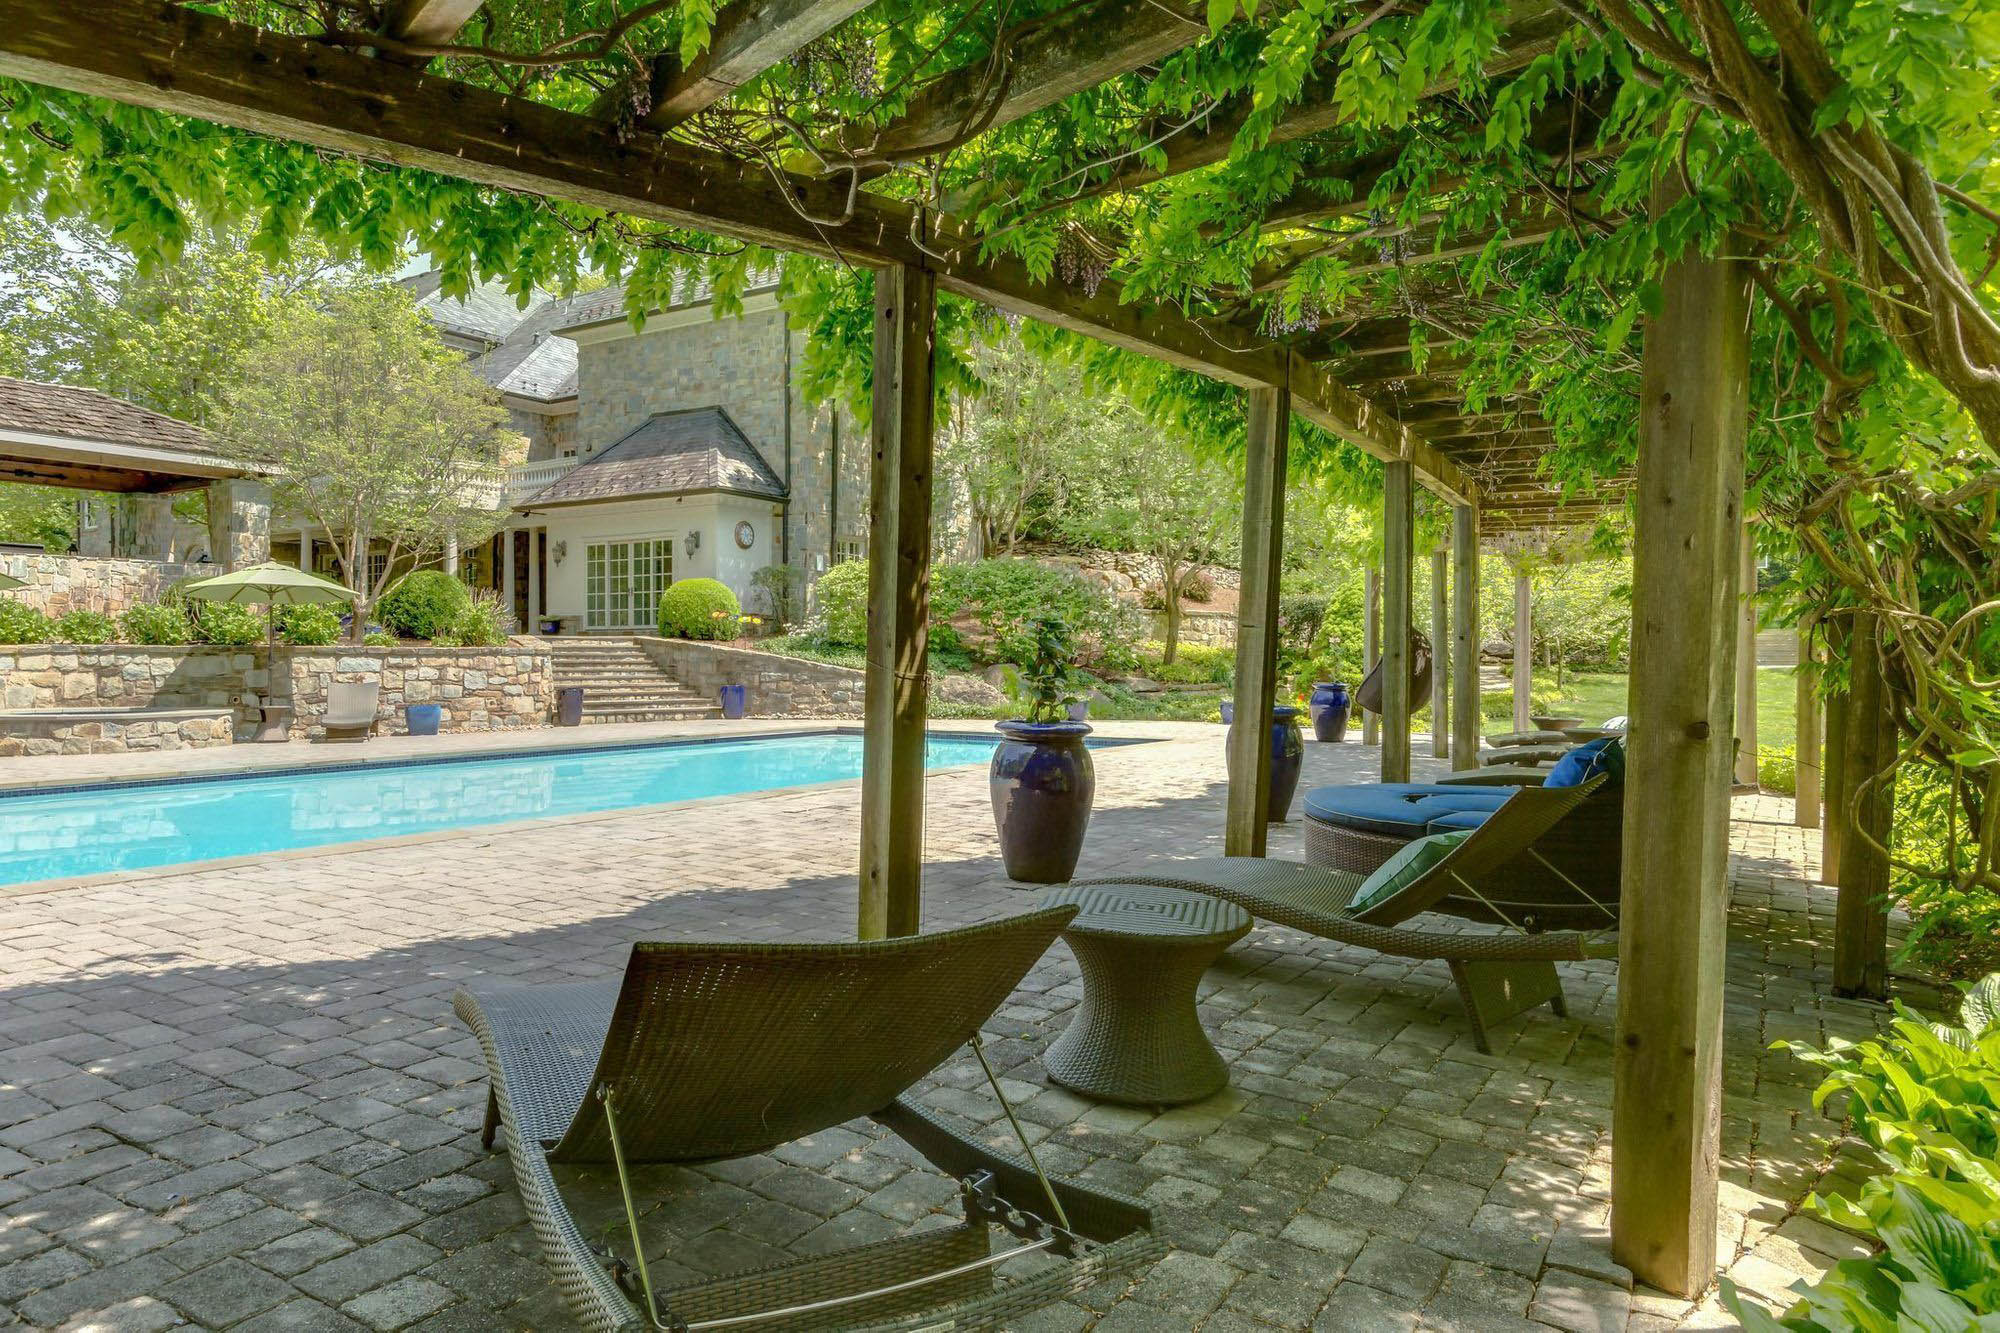 rustic poolside furniture trellis with overgrown ivy poolside wicker chairs & table blue cushions.